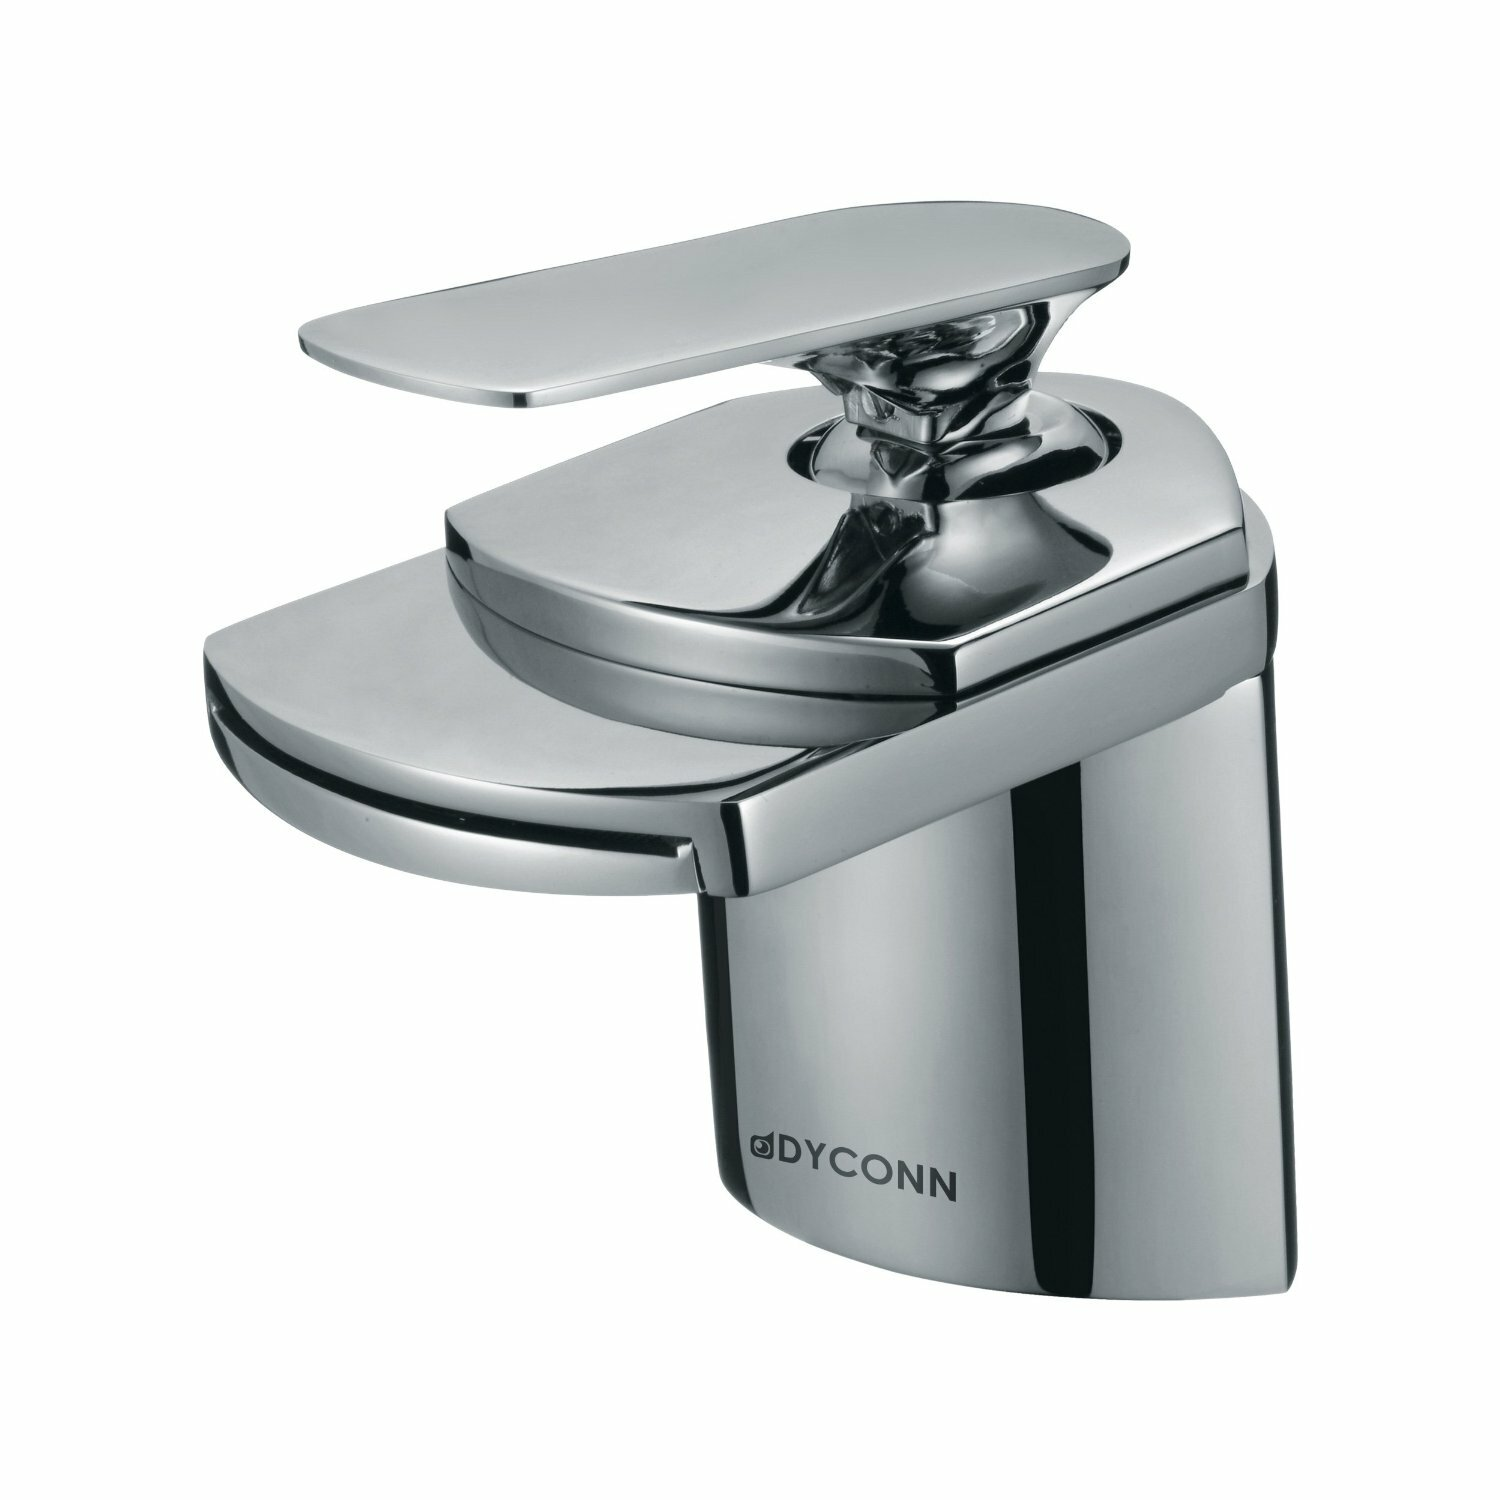 Dyconn Faucet Waterfall Single Hole Handle Bathroom Faucet & Reviews ...